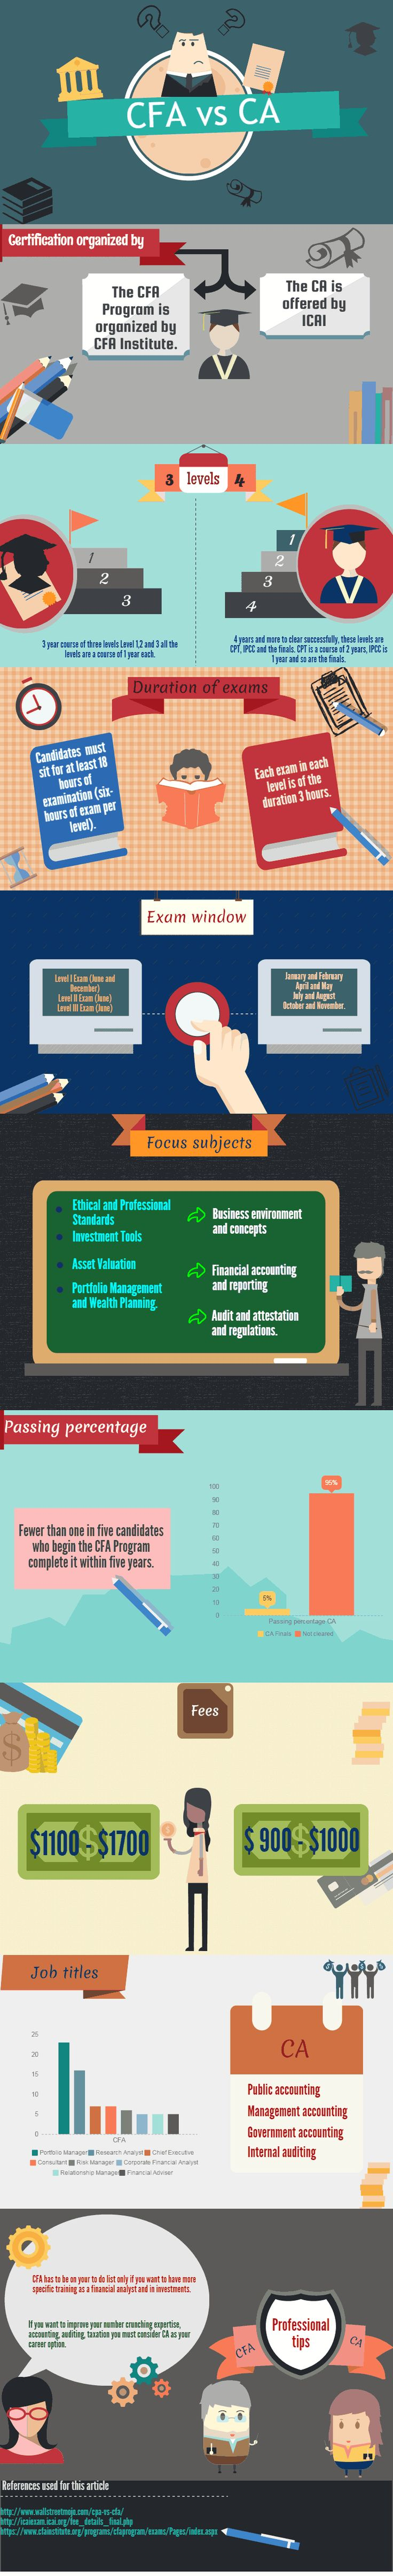 CFA or CA? Which Qualification would be a correct choice is what many finance aspirants think about. Here is a quick solution to the dilemma. Go through this infograph on CFA vs CA and learn about the key differences between the two in terms of educational requirements, exam details and Career. Hope this helps! Happy learning!